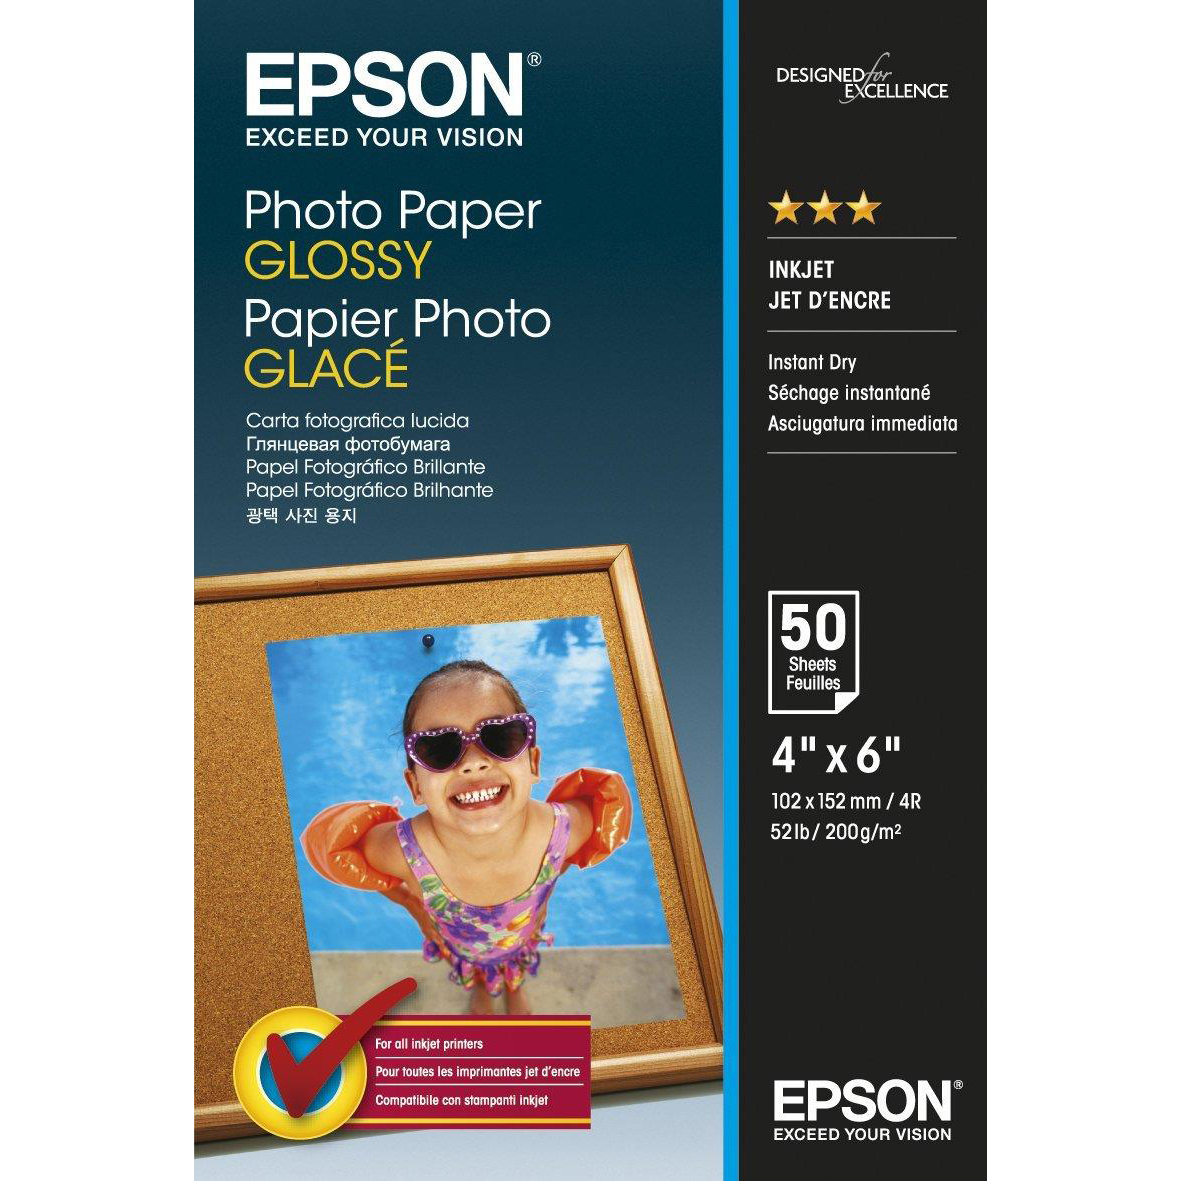 Epson Premium Photo Paper Gloss 200gsm 100x150mm Ref C13S042547 [50 Sheets]